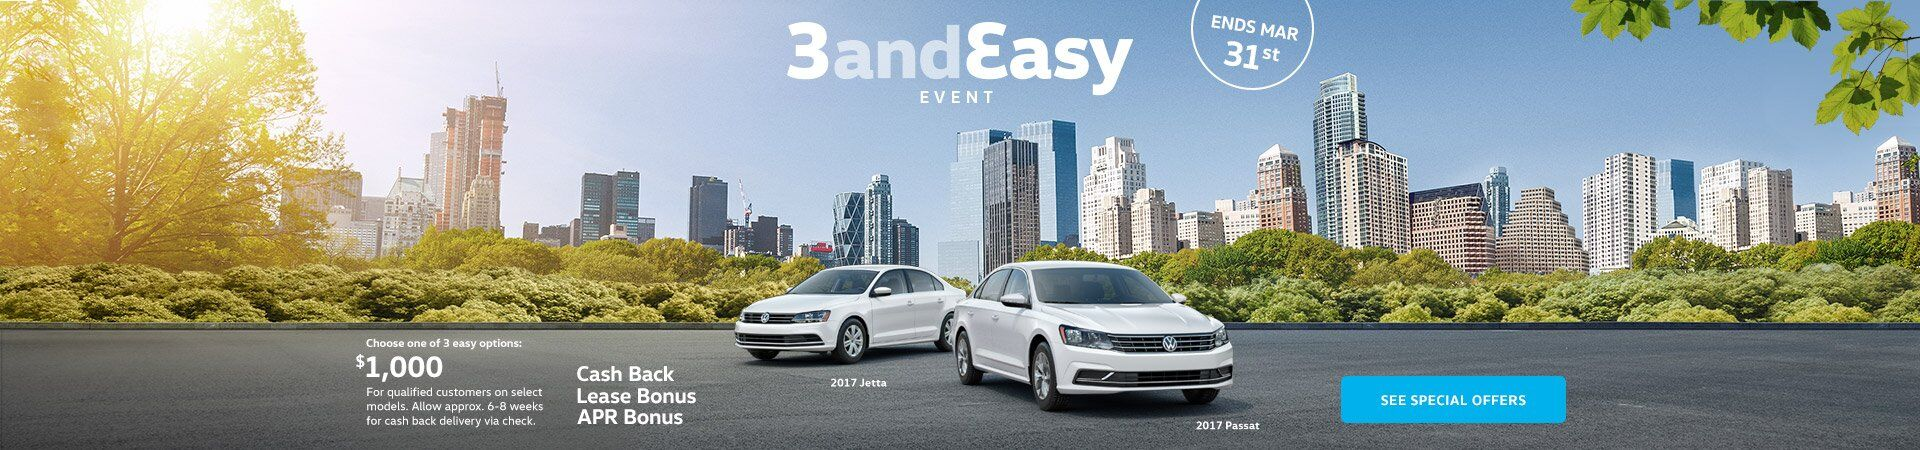 3 and Easy Sales Event